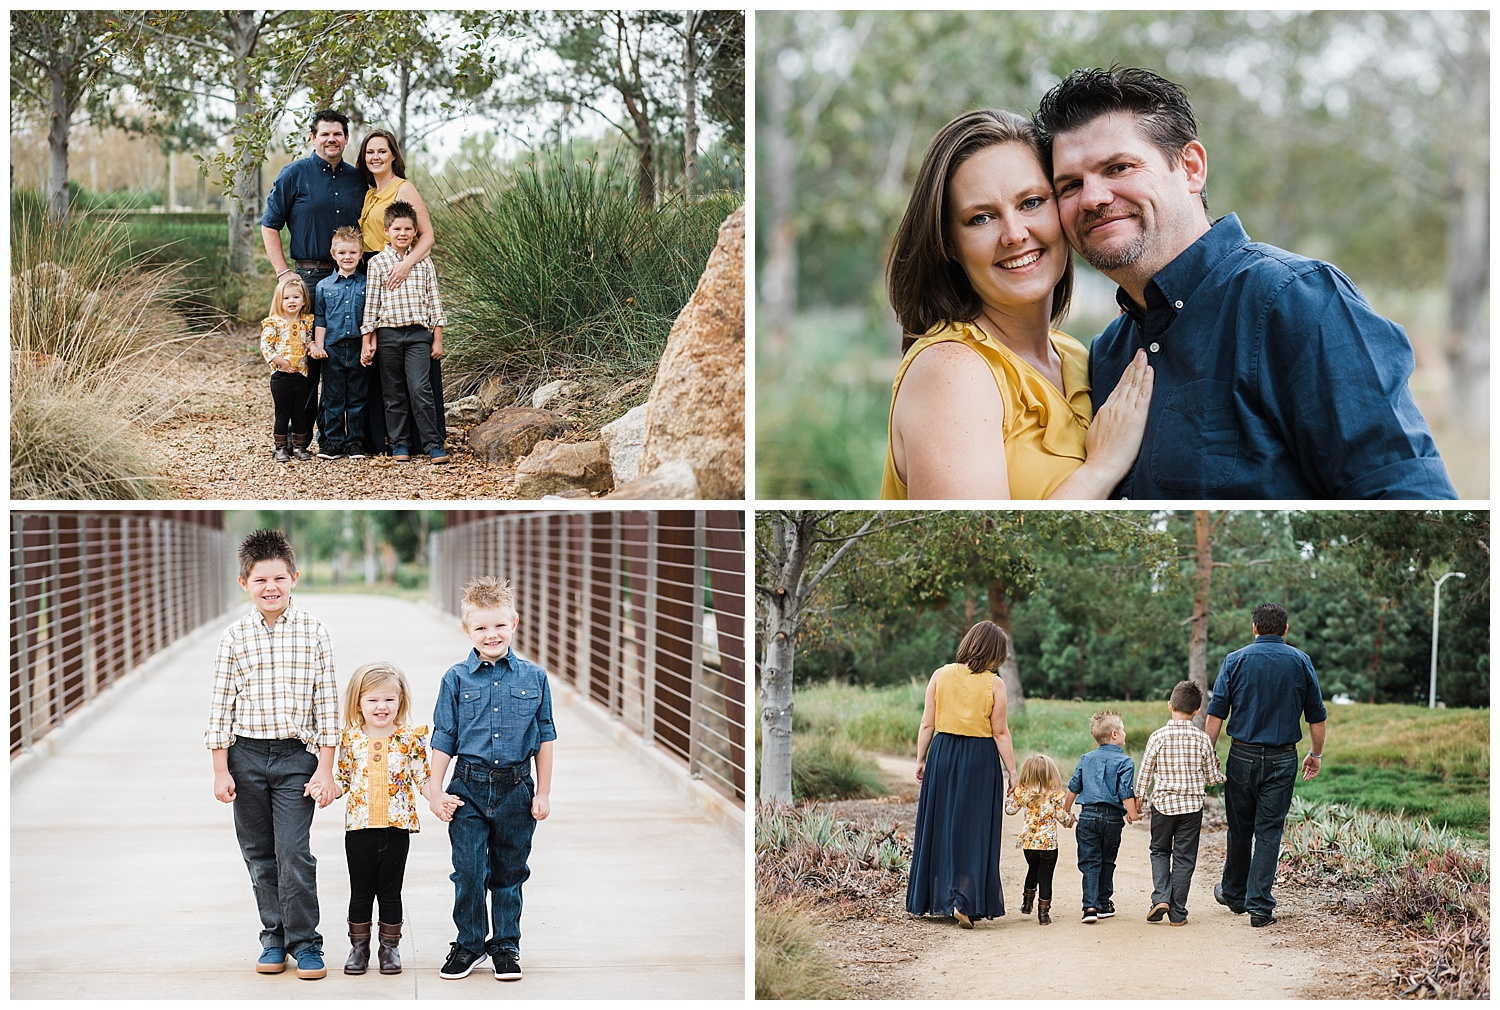 Kari Webb Photography | Orange County Family Photographer | family of 5 in a park